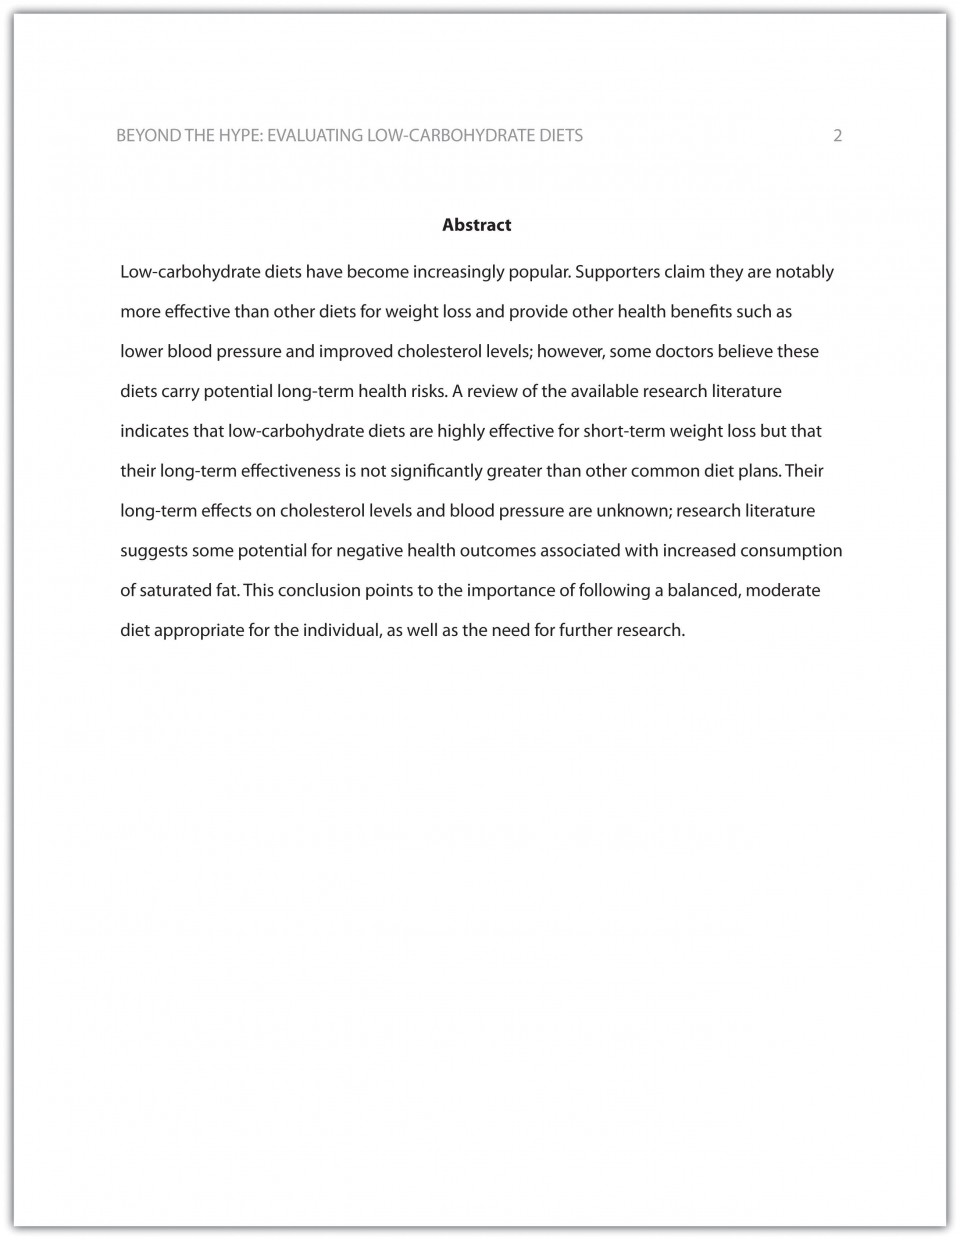 015 Biology Research Paper Outline Impressive How To Write A 960